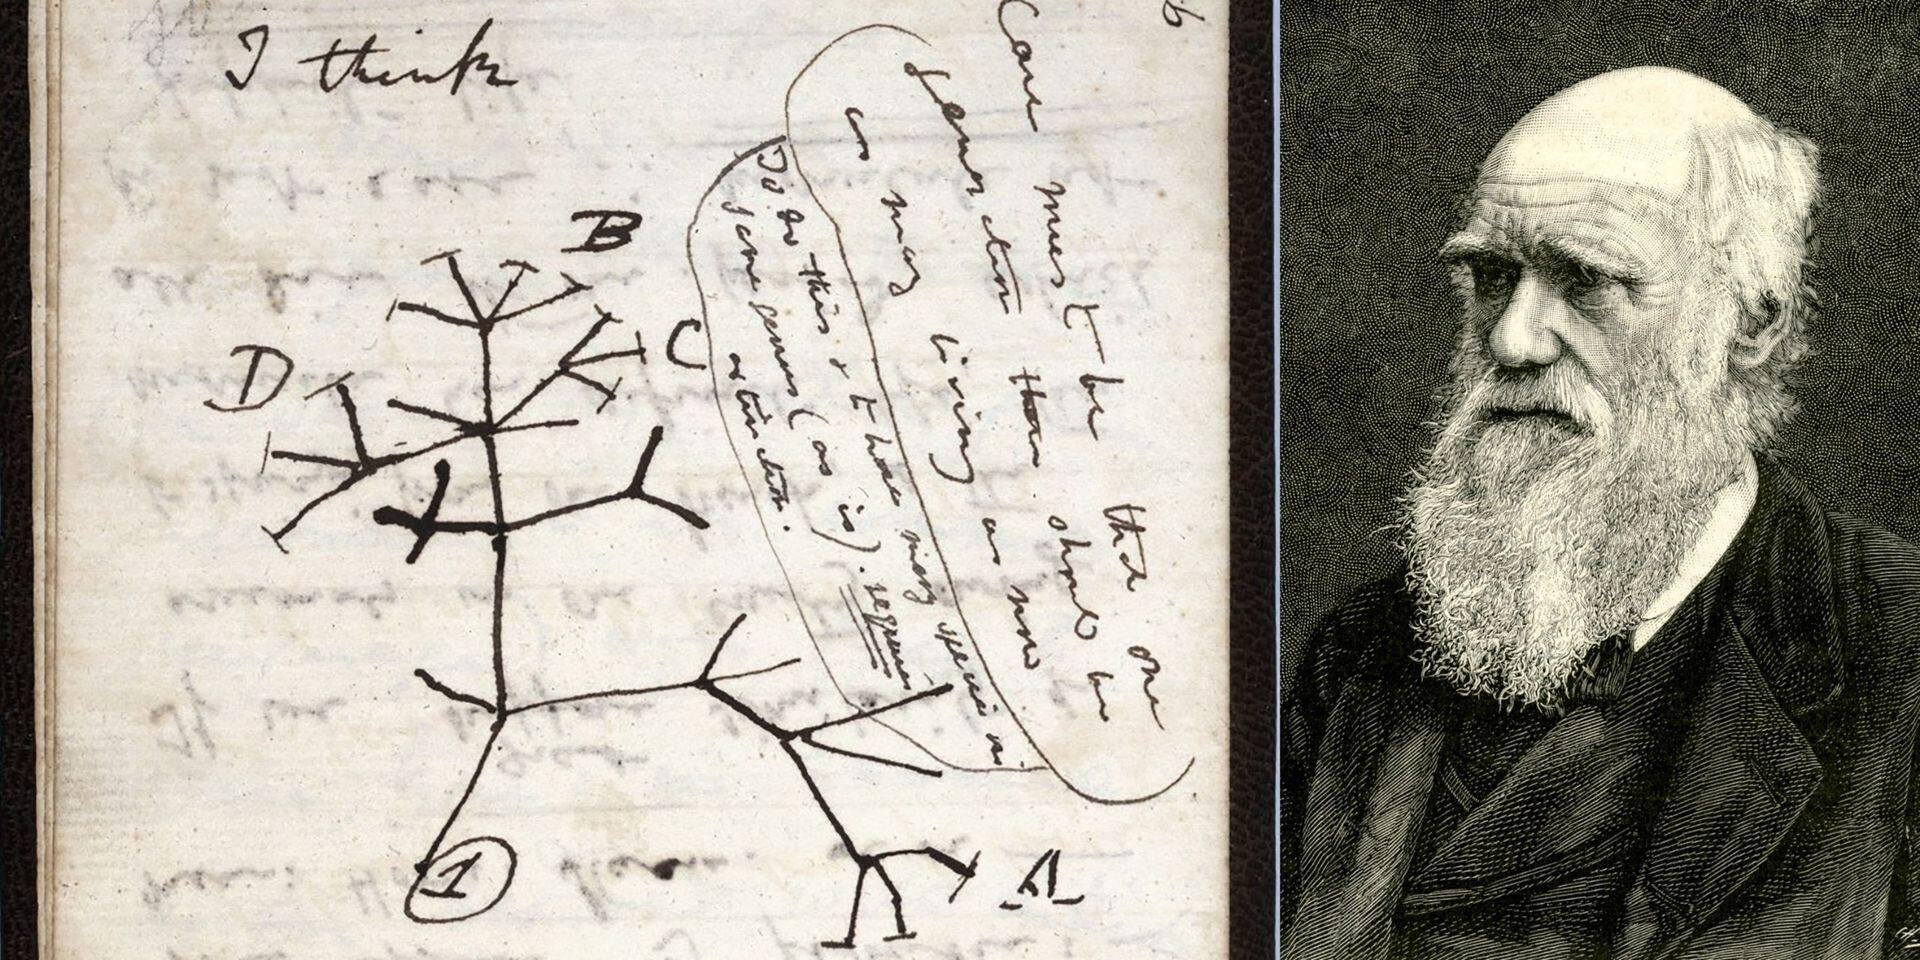 Cambridge à la recherche de deux carnets de notes disparus de Charles Darwin